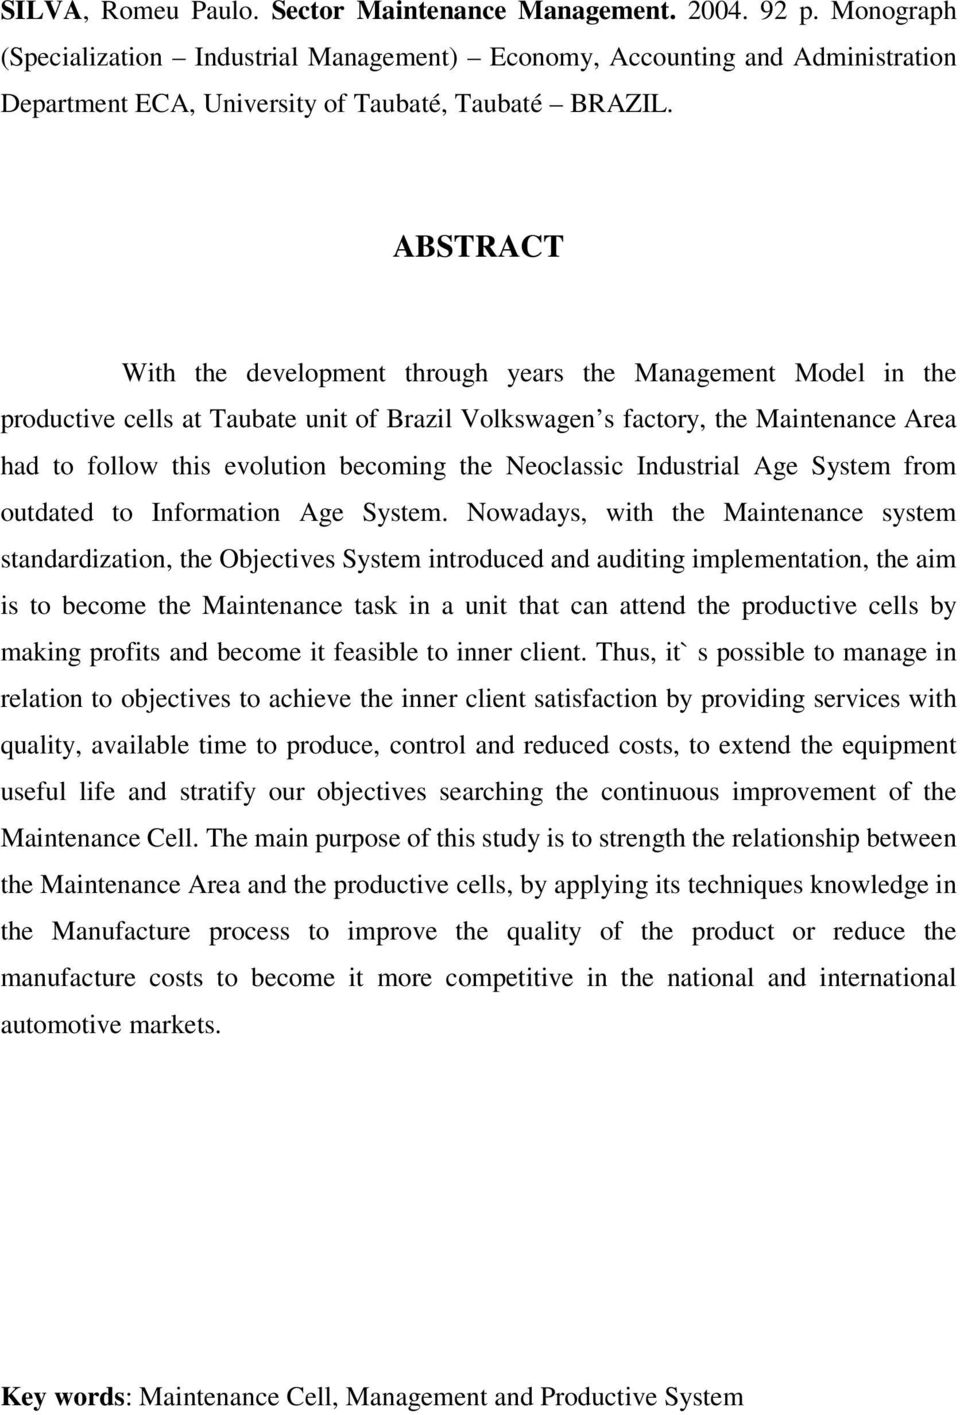 ABSTRACT With the development through years the Management Model in the productive cells at Taubate unit of Brazil Volkswagen s factory, the Maintenance Area had to follow this evolution becoming the